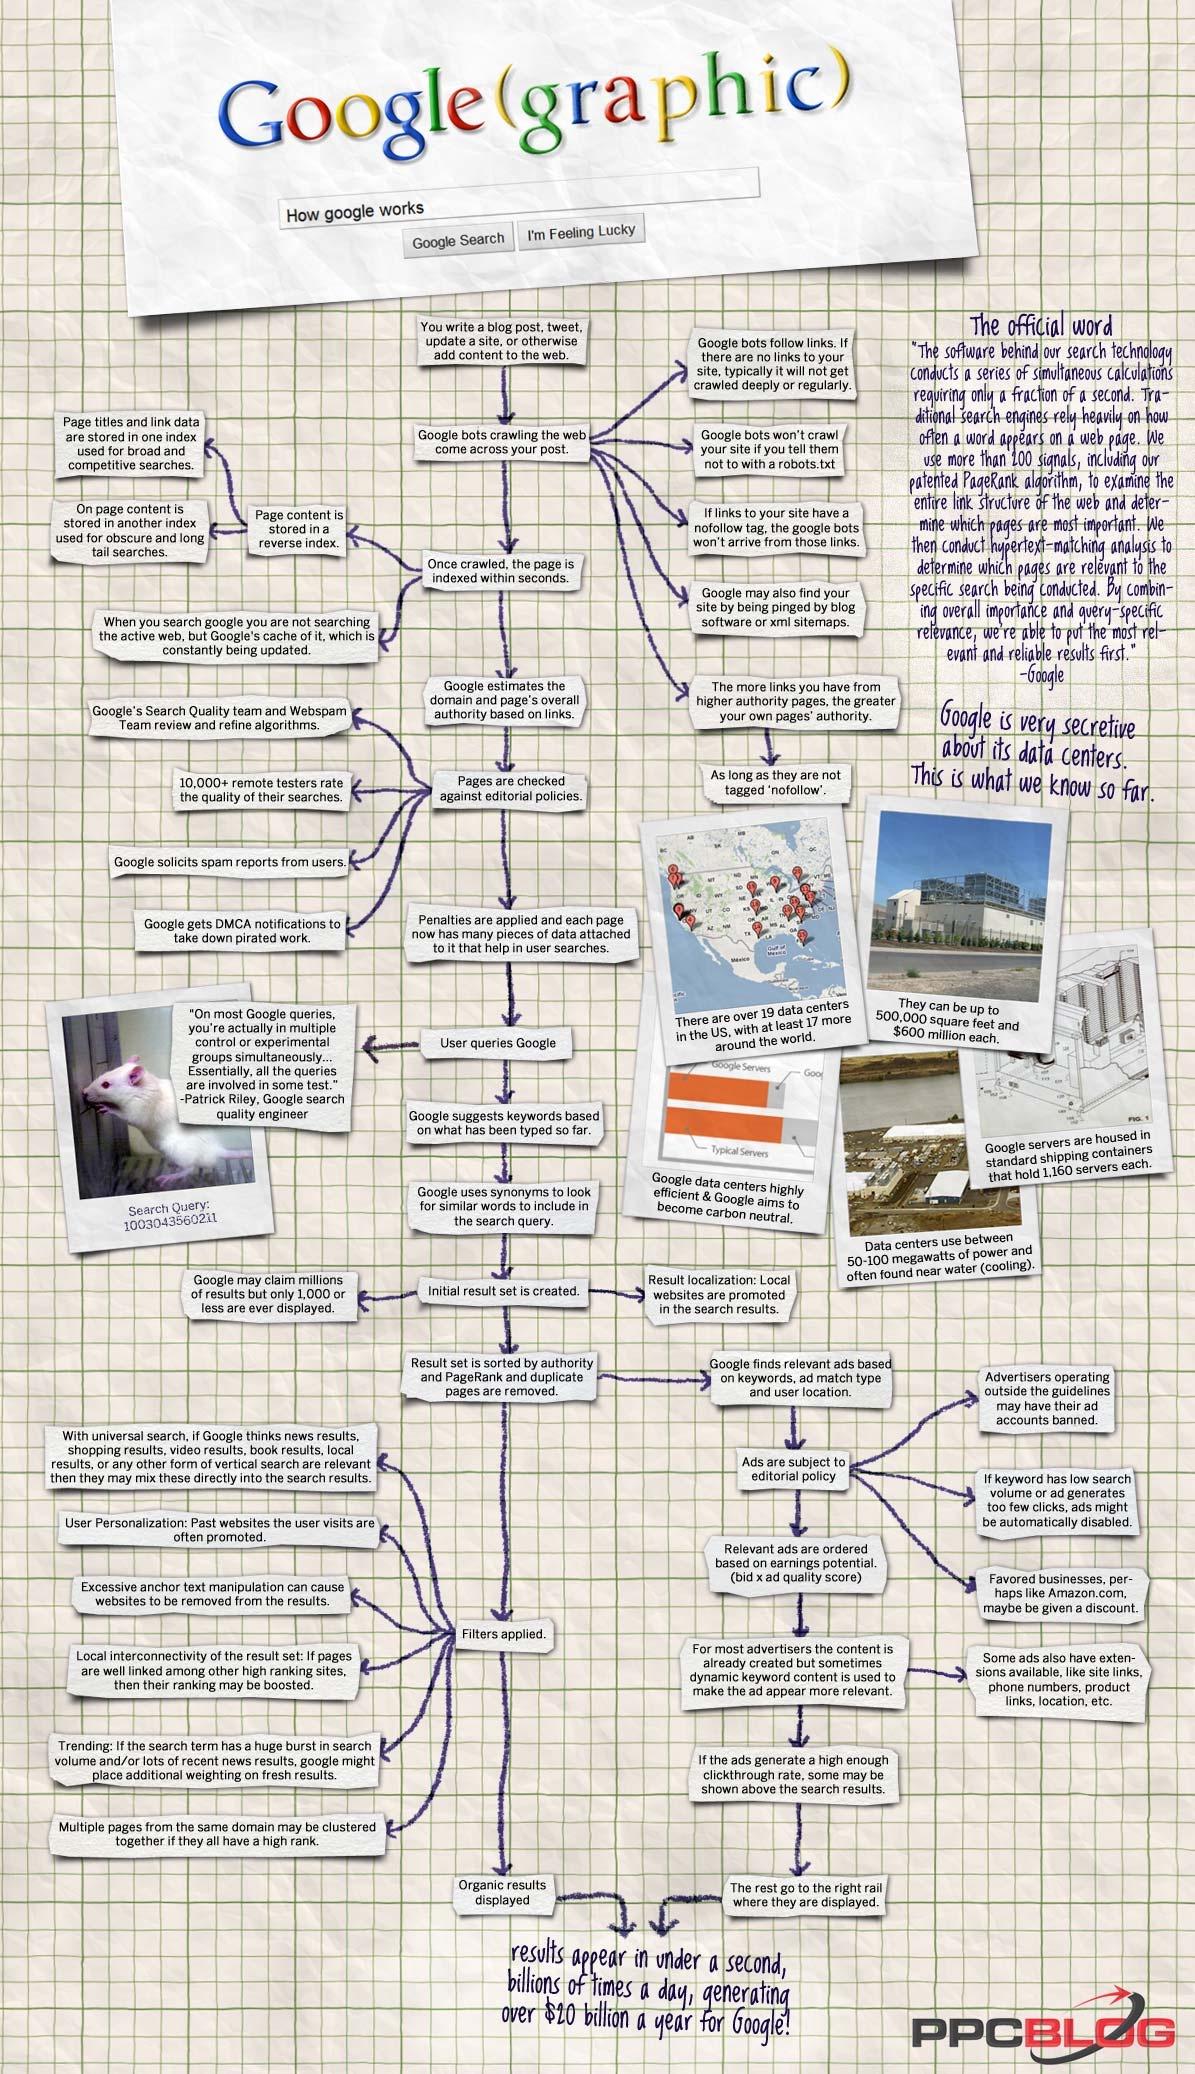 How Google Works: Overview Of The Powerful Search Engine [Infographic]